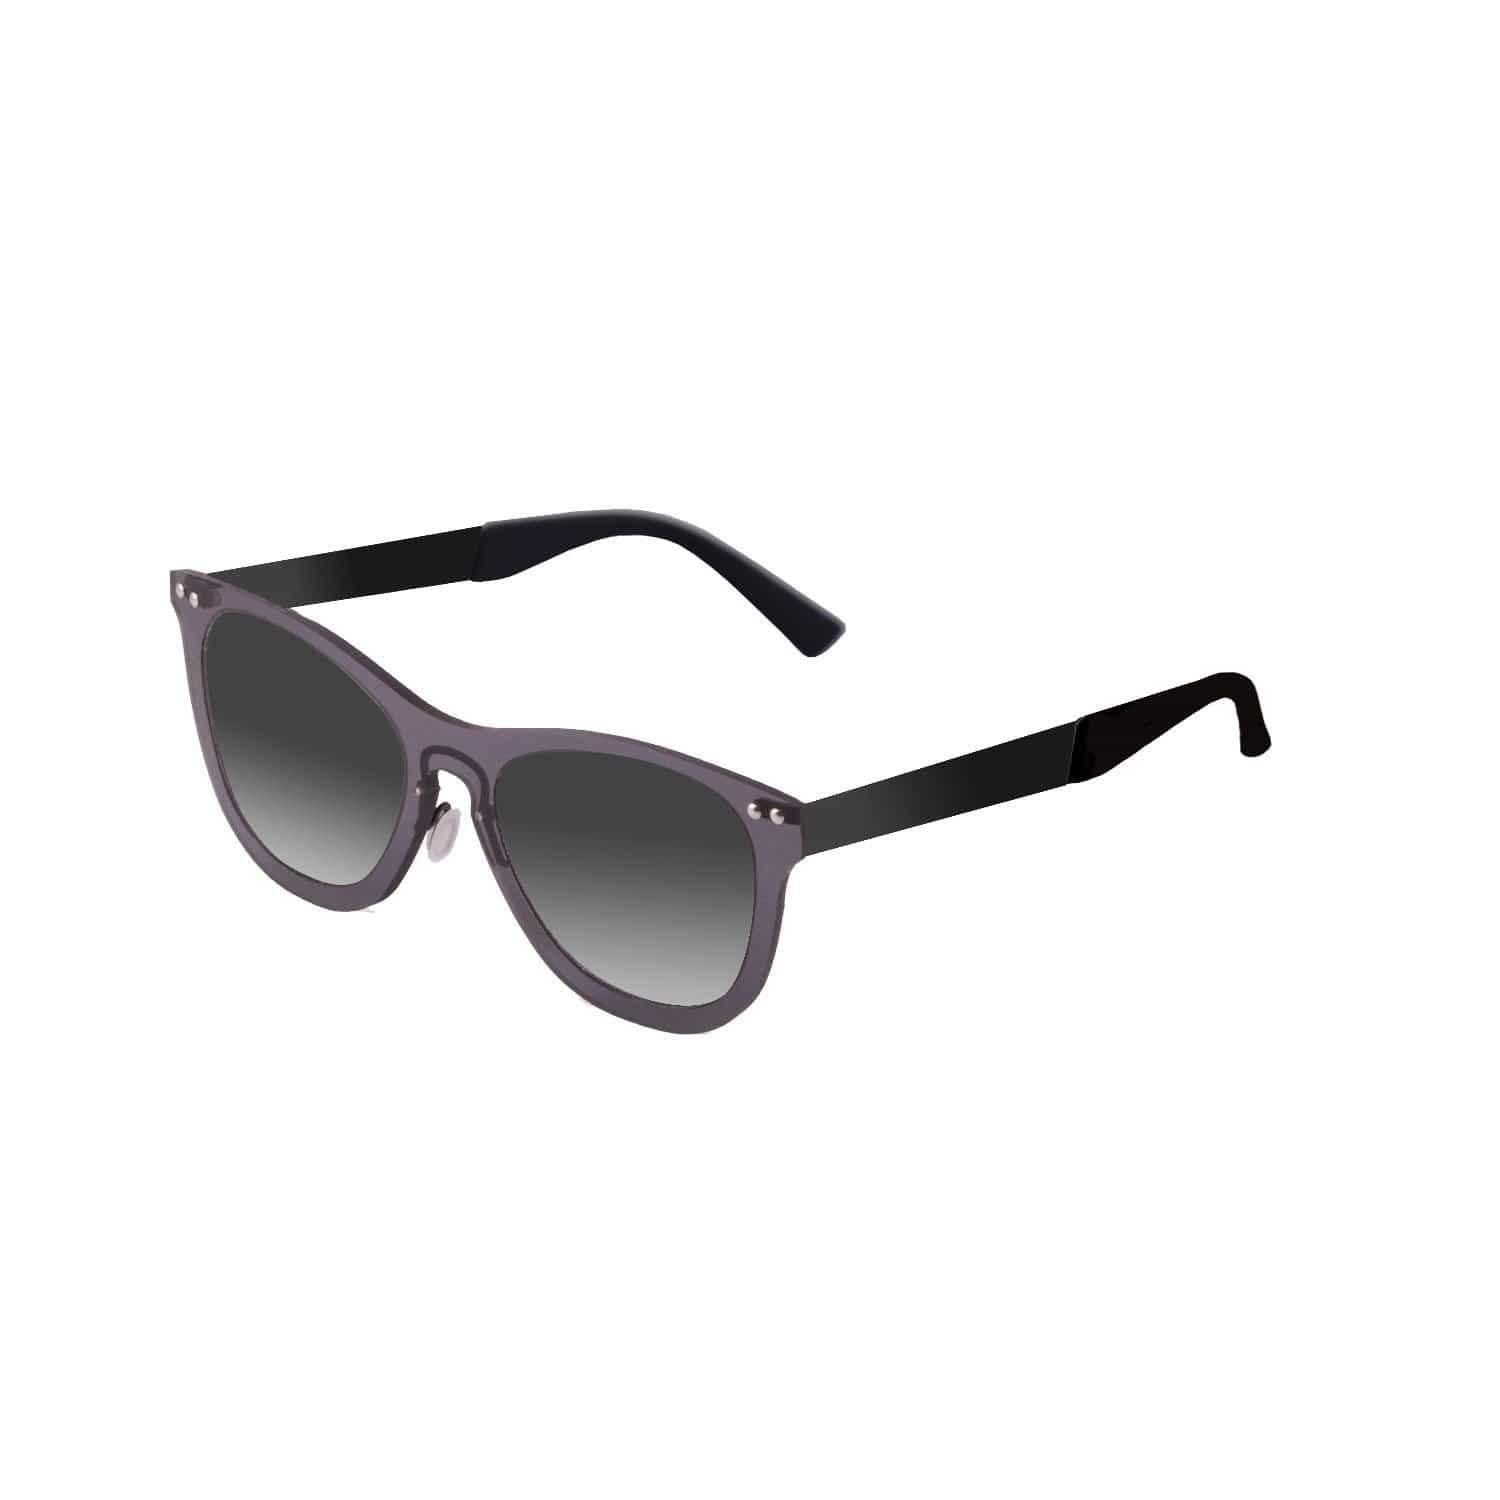 Ocean Sunglasses Accessories Sunglasses black / NOSIZE Ocean Sunglasses - FLORENCIA